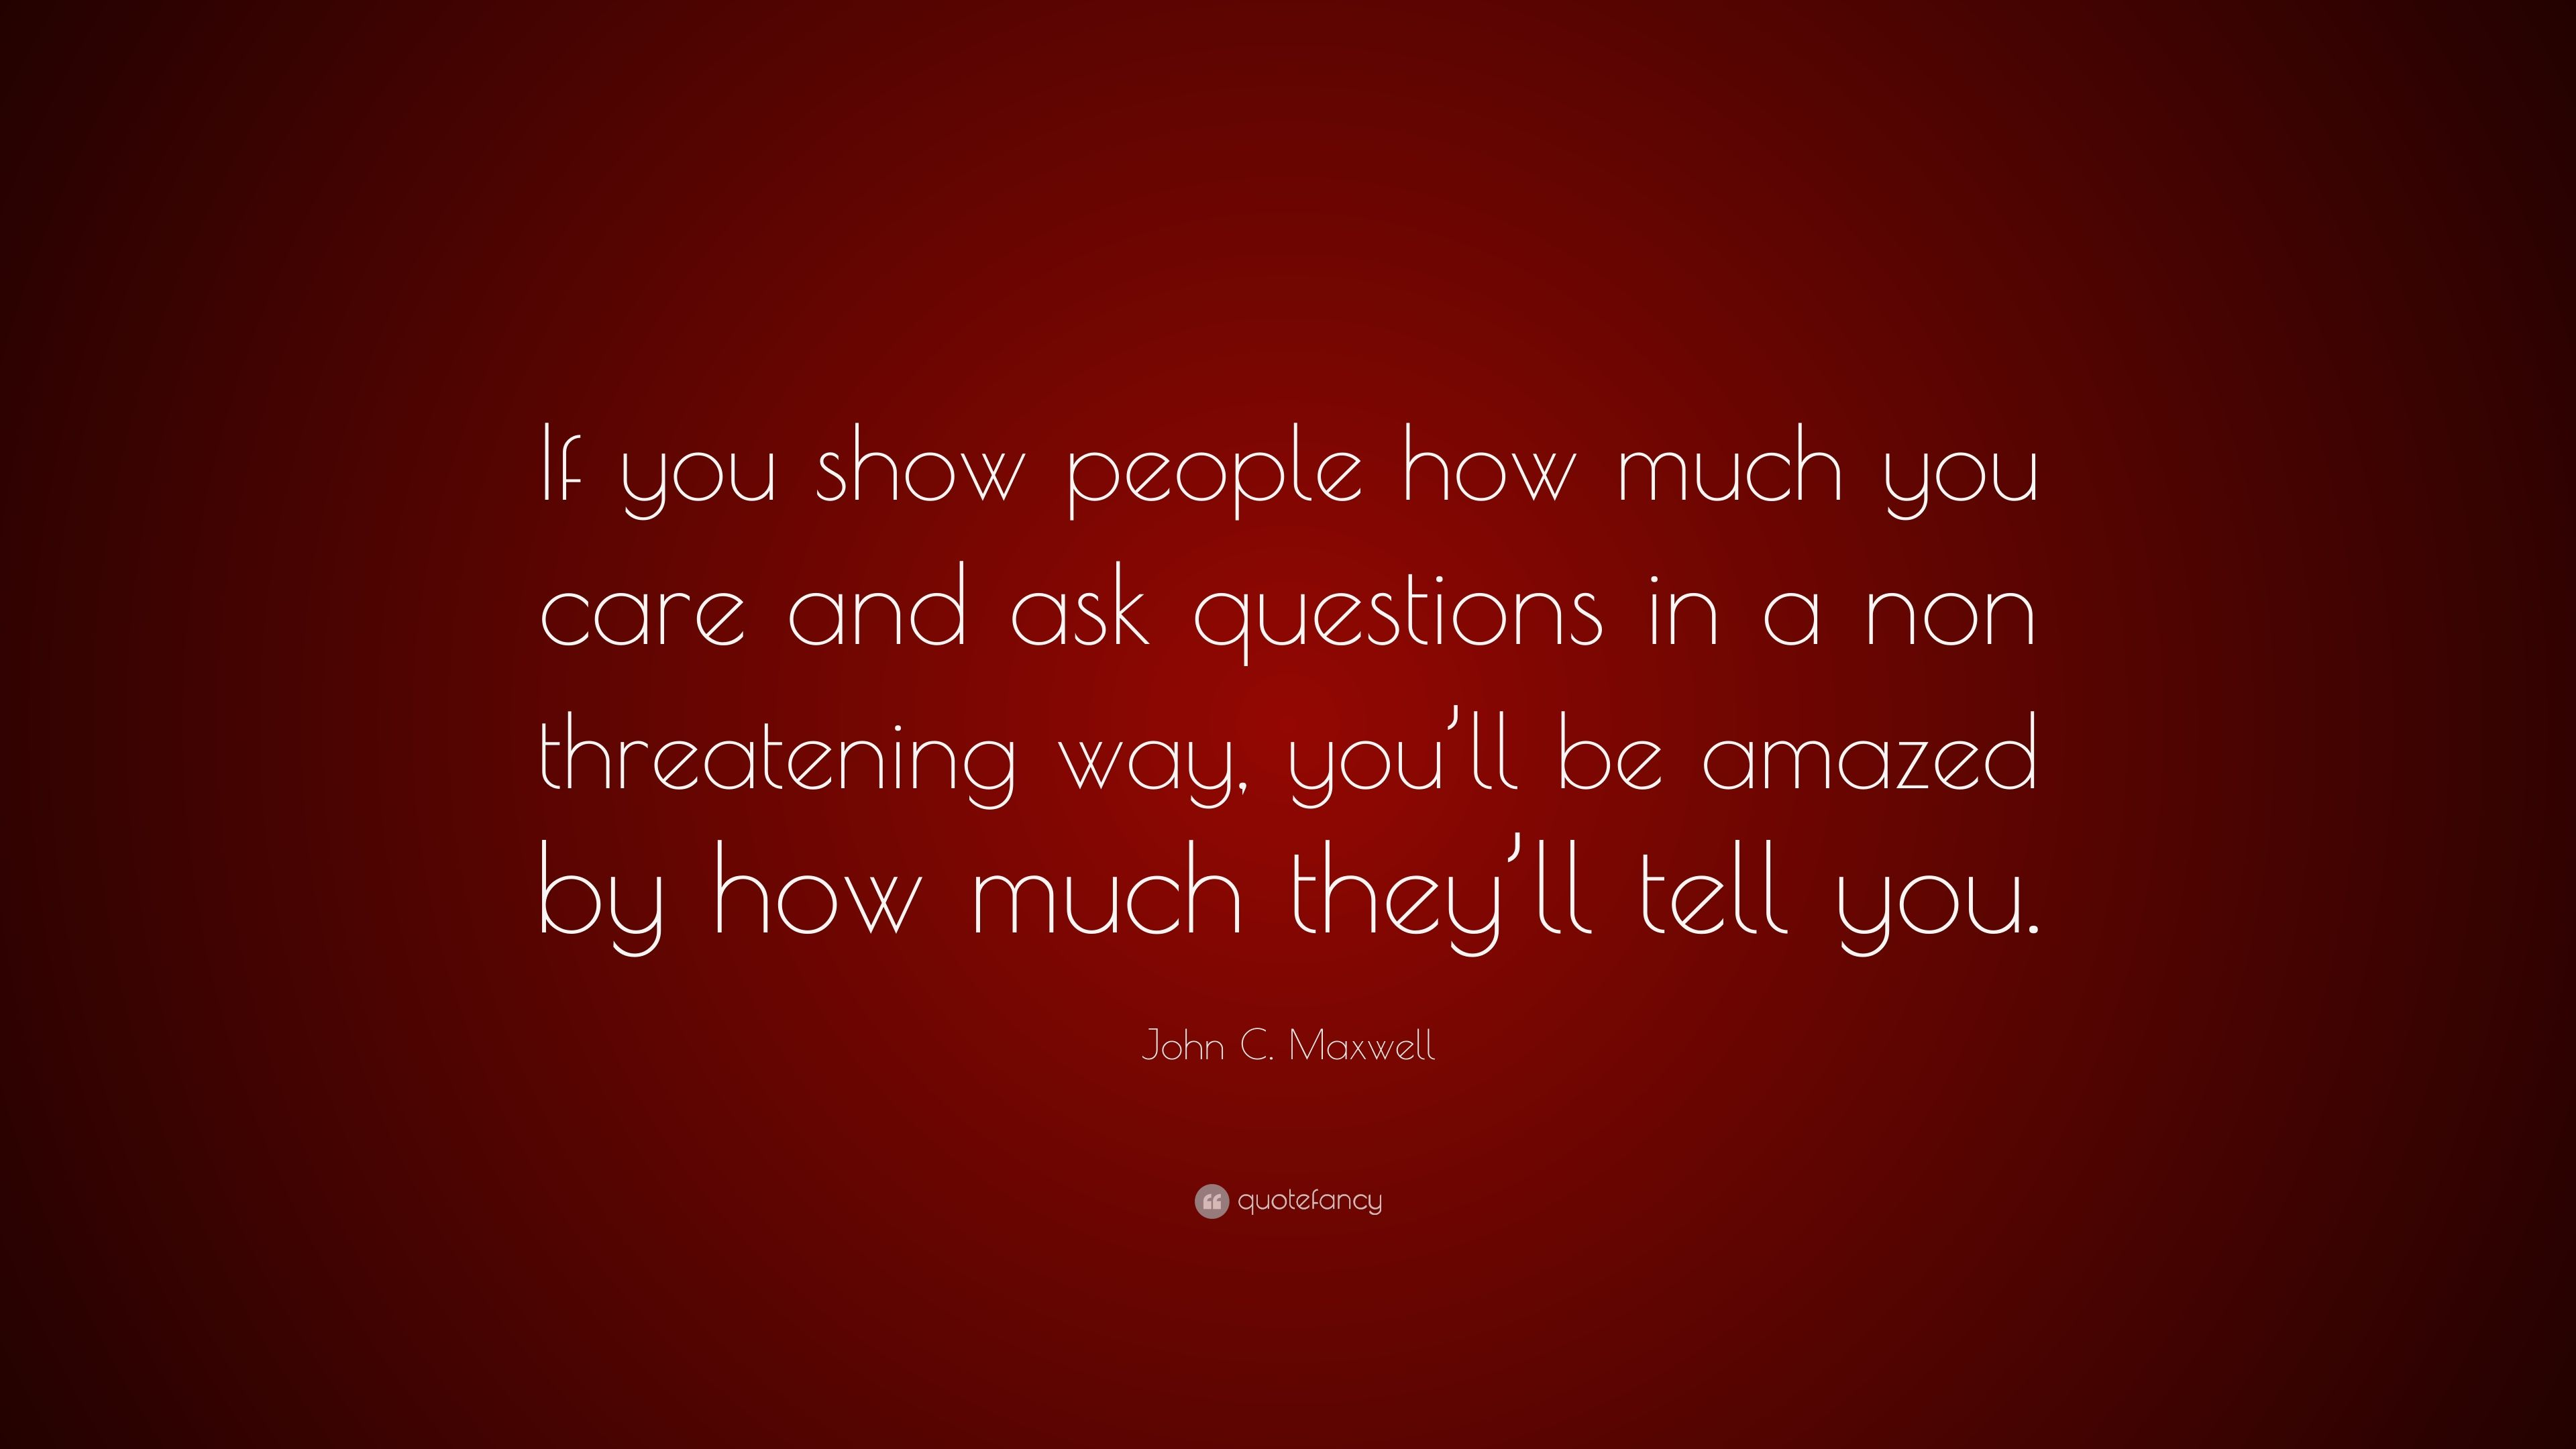 John C Maxwell Quote If You Show People How Much You Care And Ask